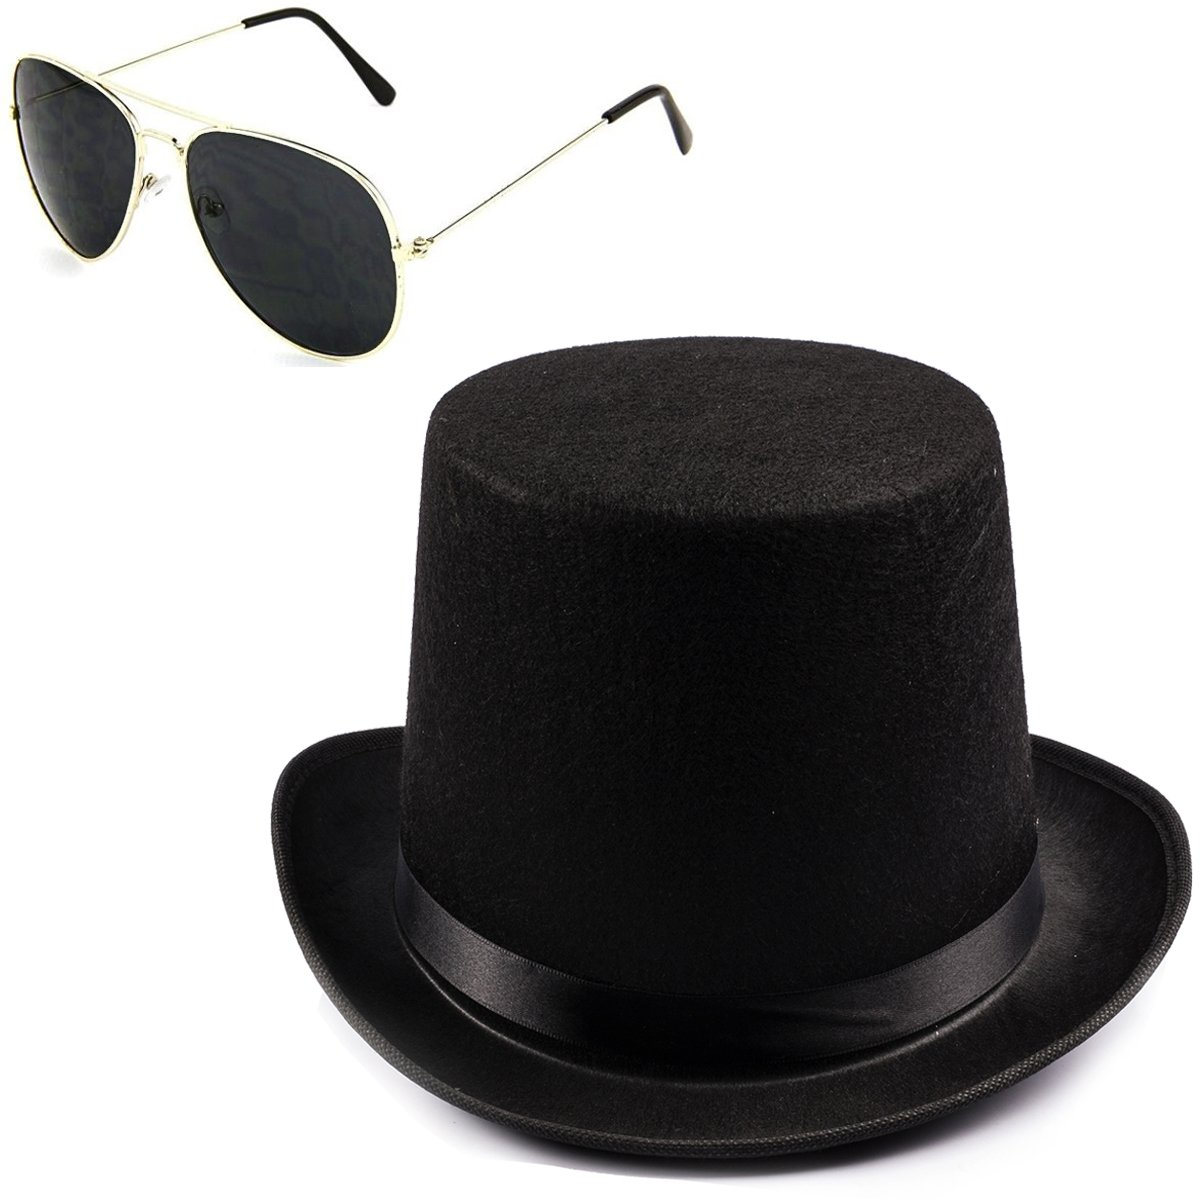 Funny Party Hats Black Guitar Player Costume Accessory Felt Top Hat-Aviator Sunglasses by